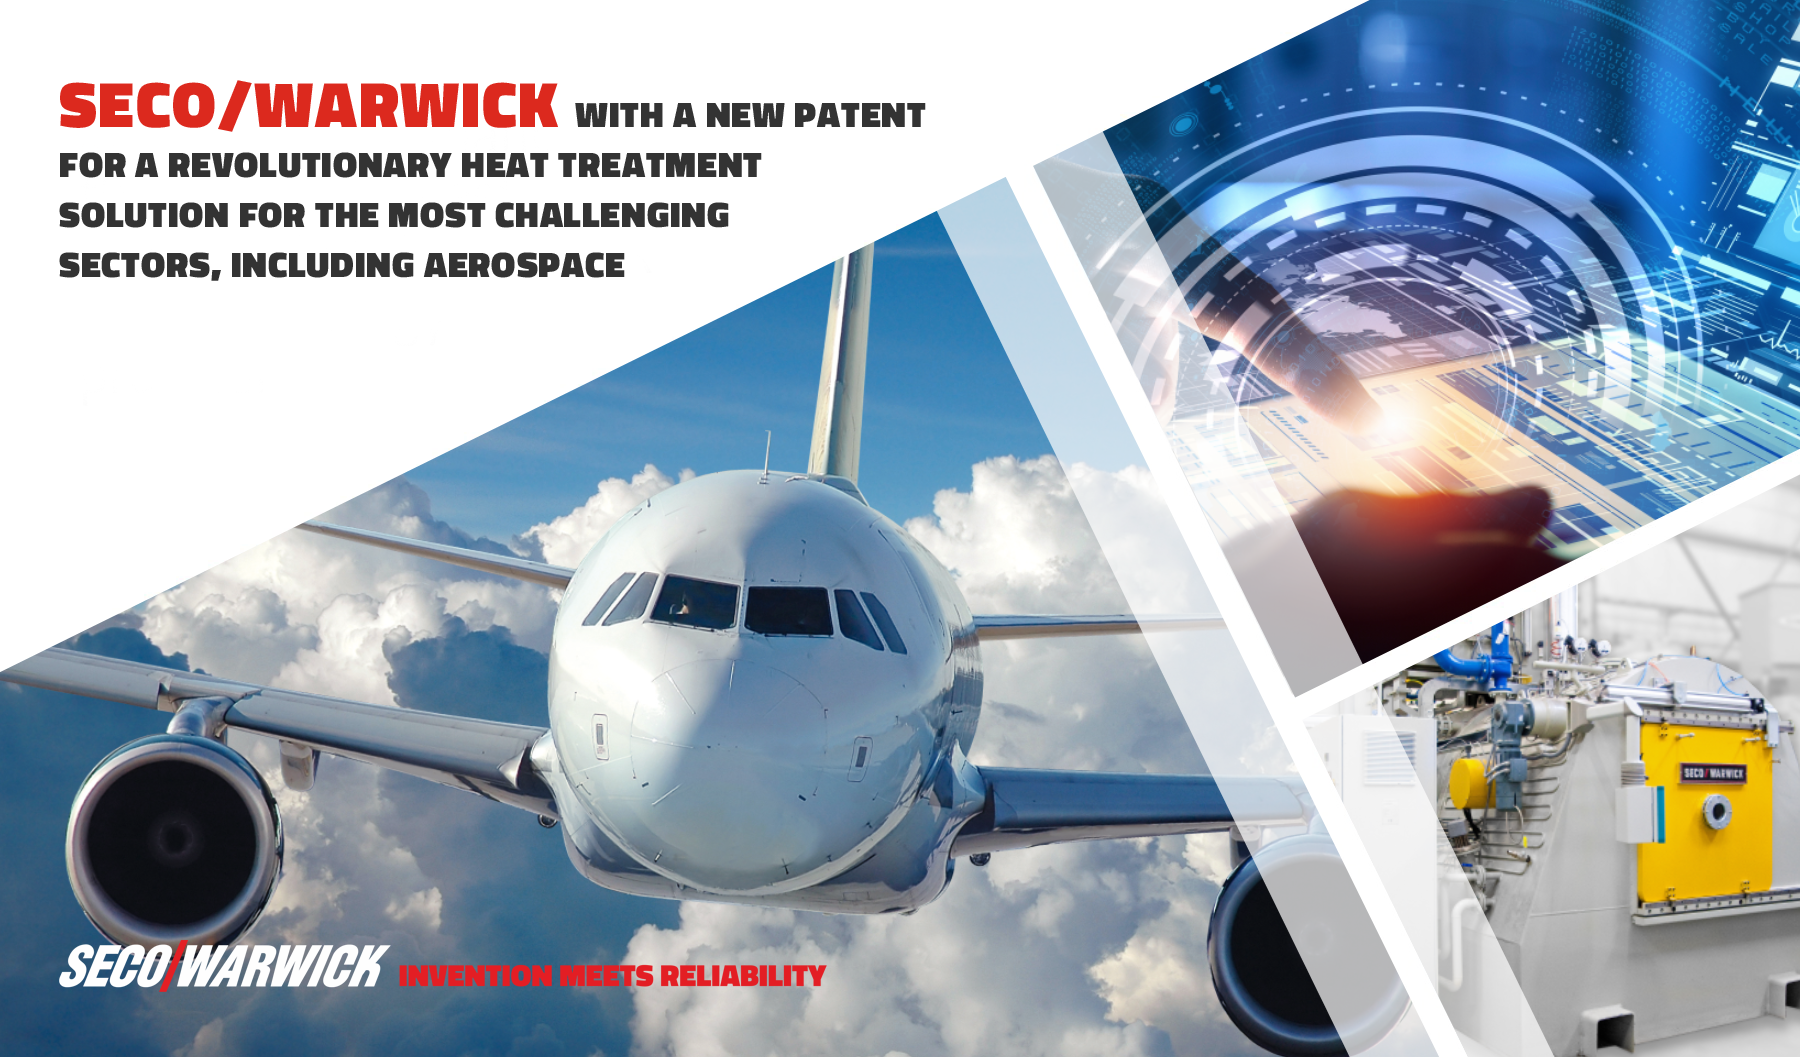 SECO/WARWICK is patenting a ground-breaking heat treatment solution for the most demanding industries, including aerospace.